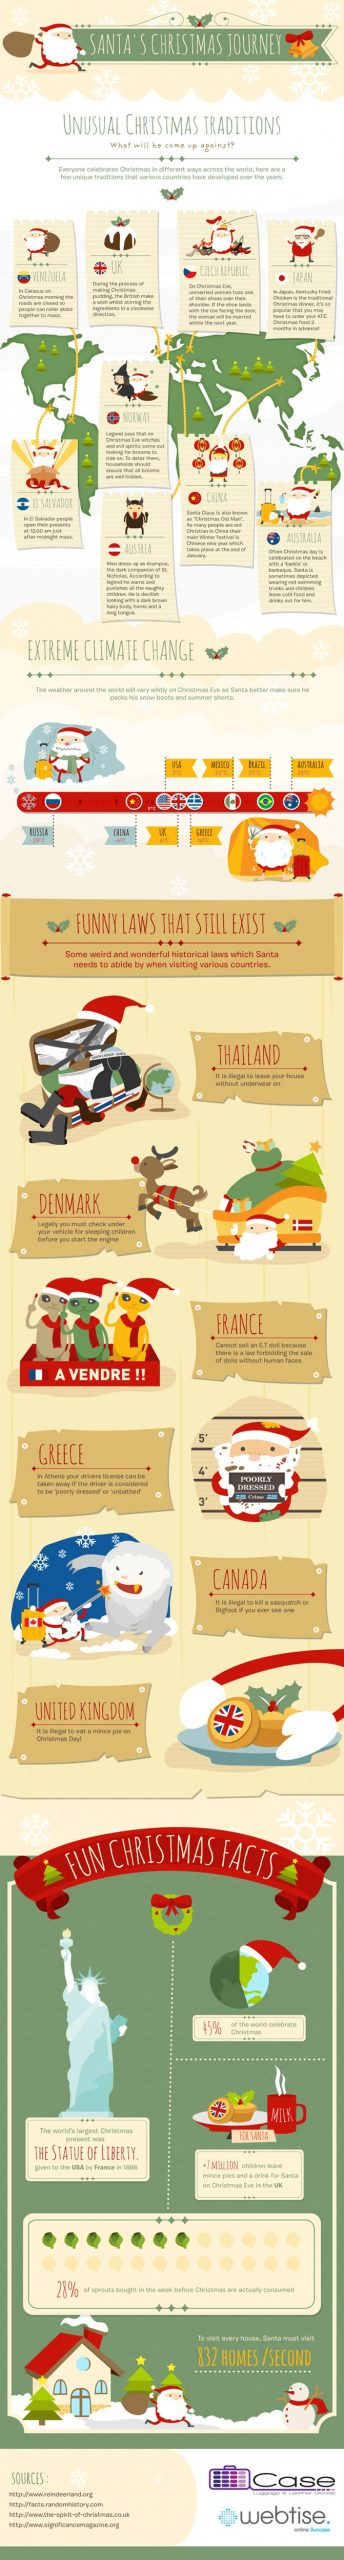 An infographic about Santa's Christmas Eve Journey